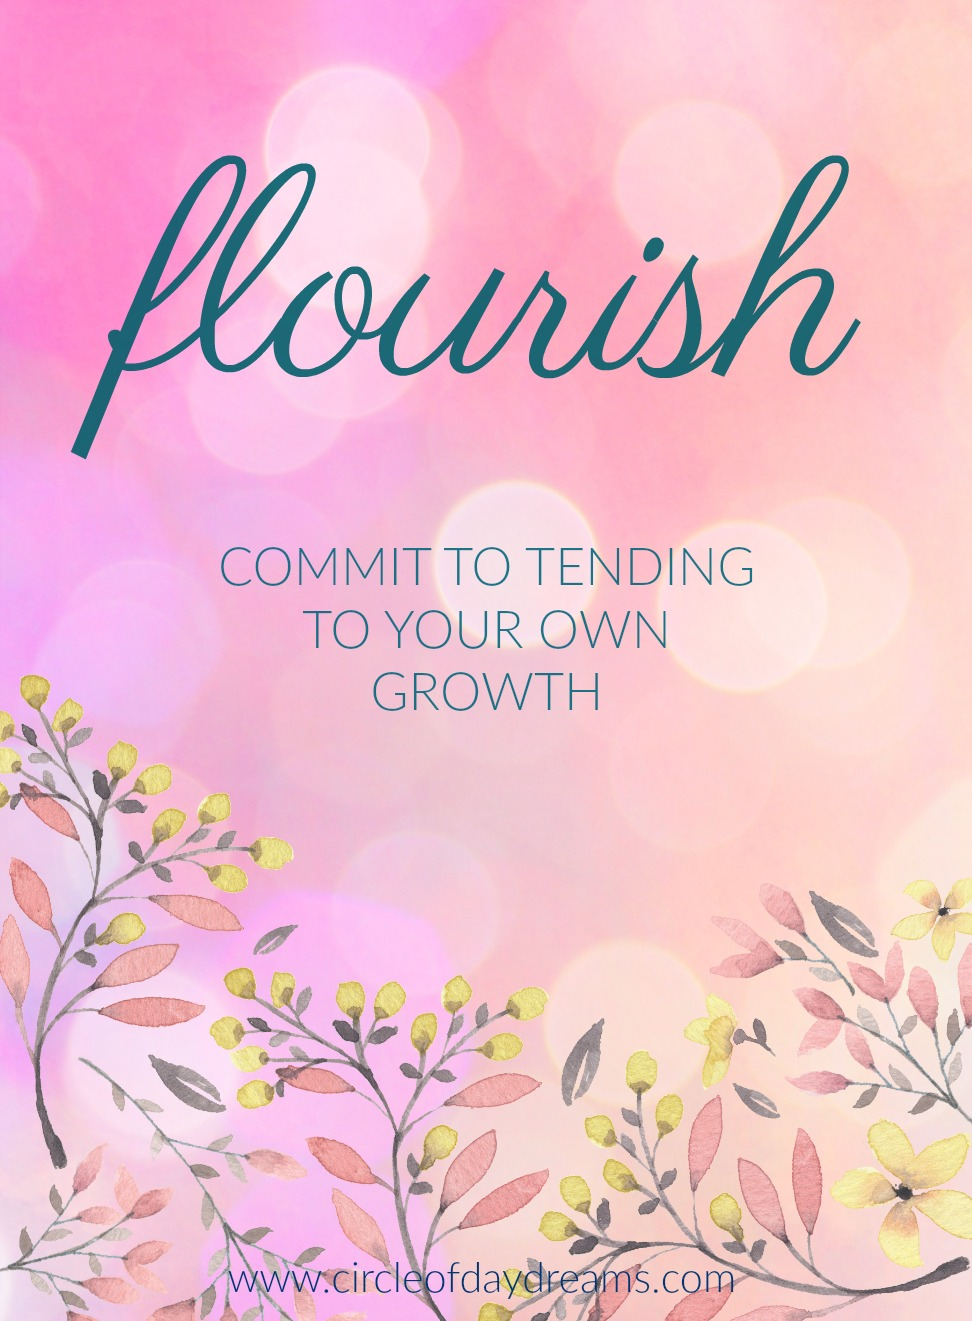 Flourish. Commit to tending to your own growth. Circle of Daydreams. www.circleofdaydreams.com